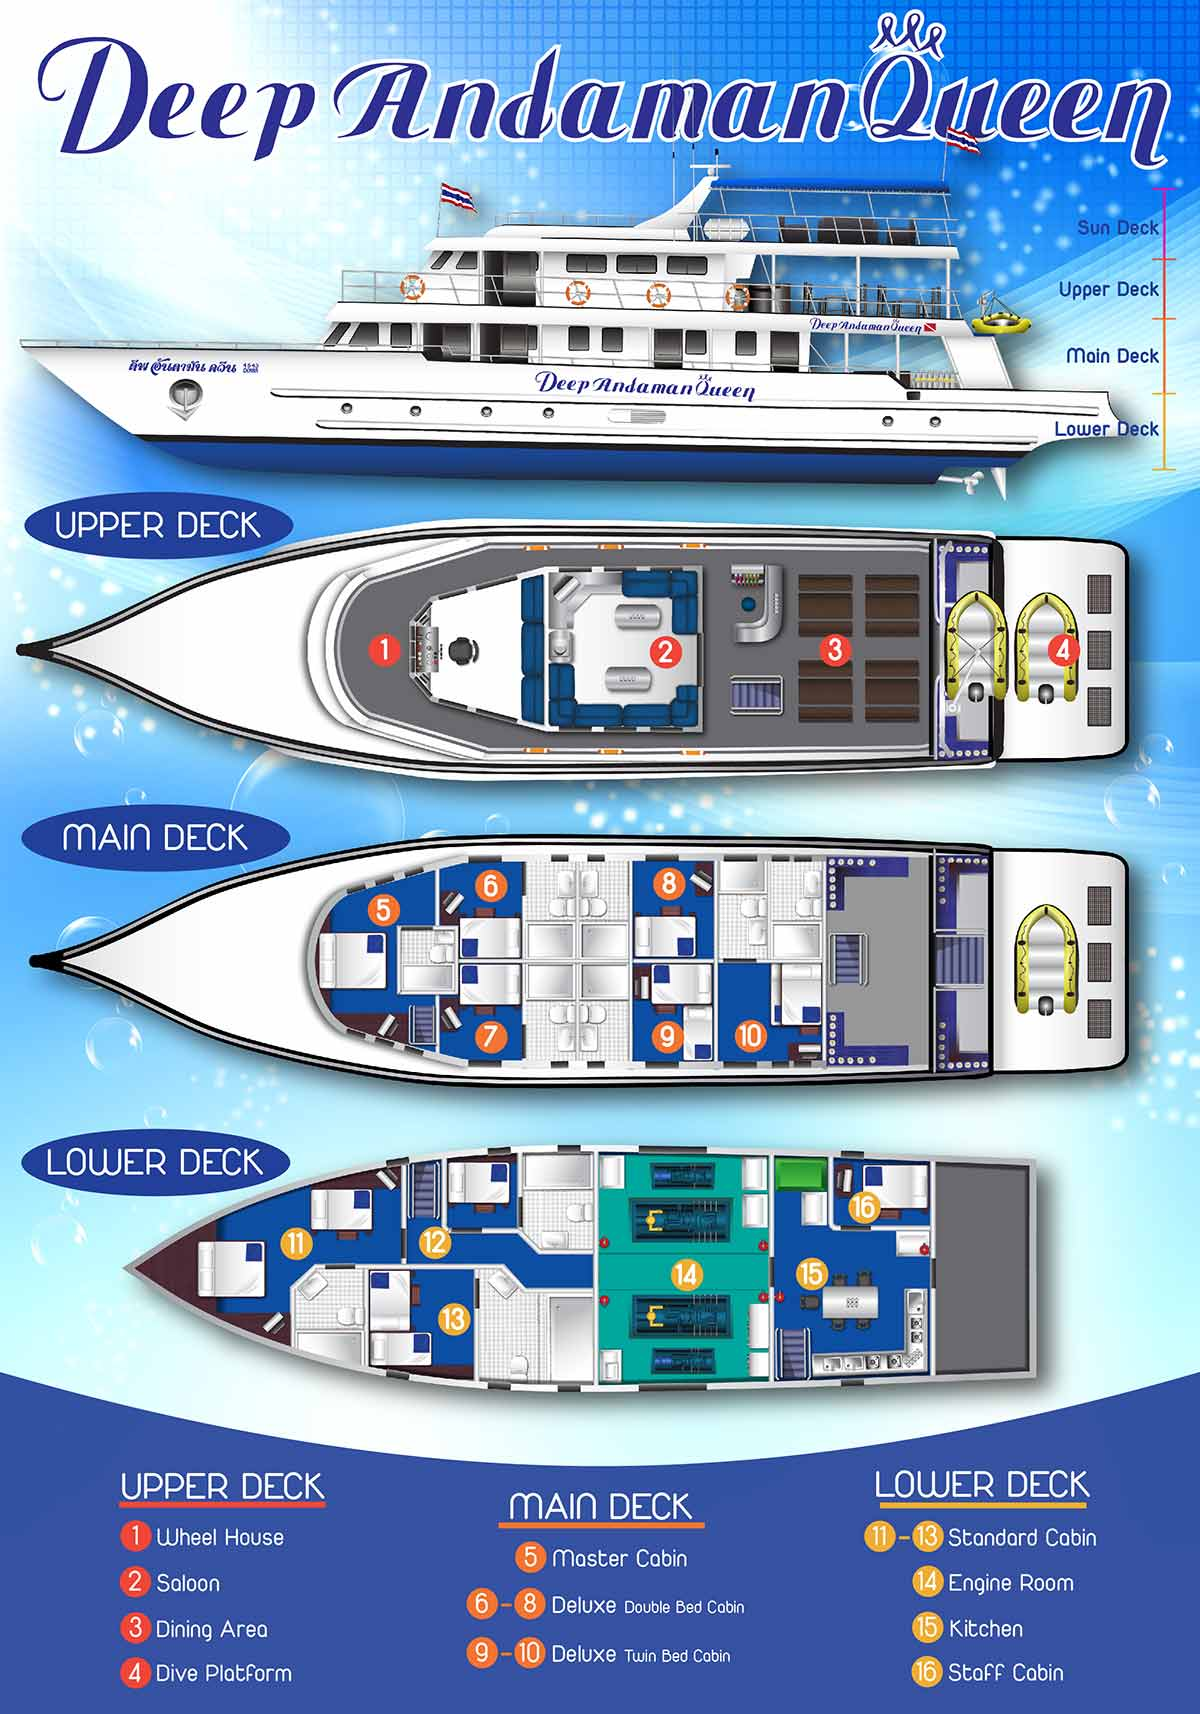 Deep Andaman Queen Layout